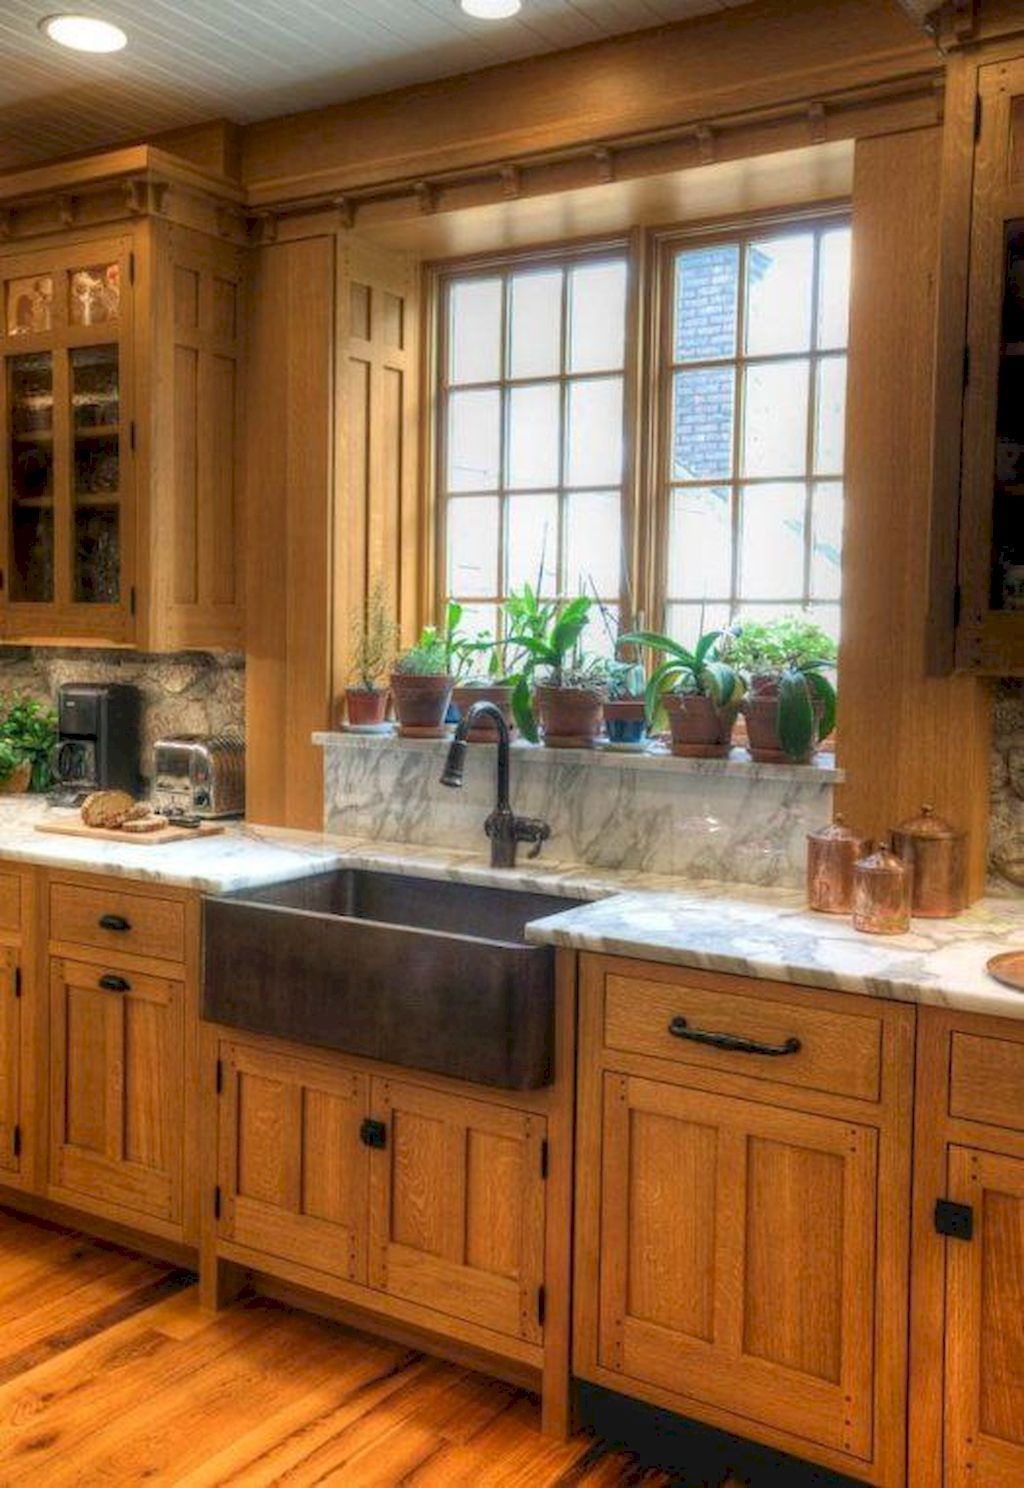 Oak Kitchen Cabinets With Grid Glass Affordable Custom Cabinets Showroom Kitchen Cabinet Styles Mission Style Kitchen Cabinets Upper Kitchen Cabinets